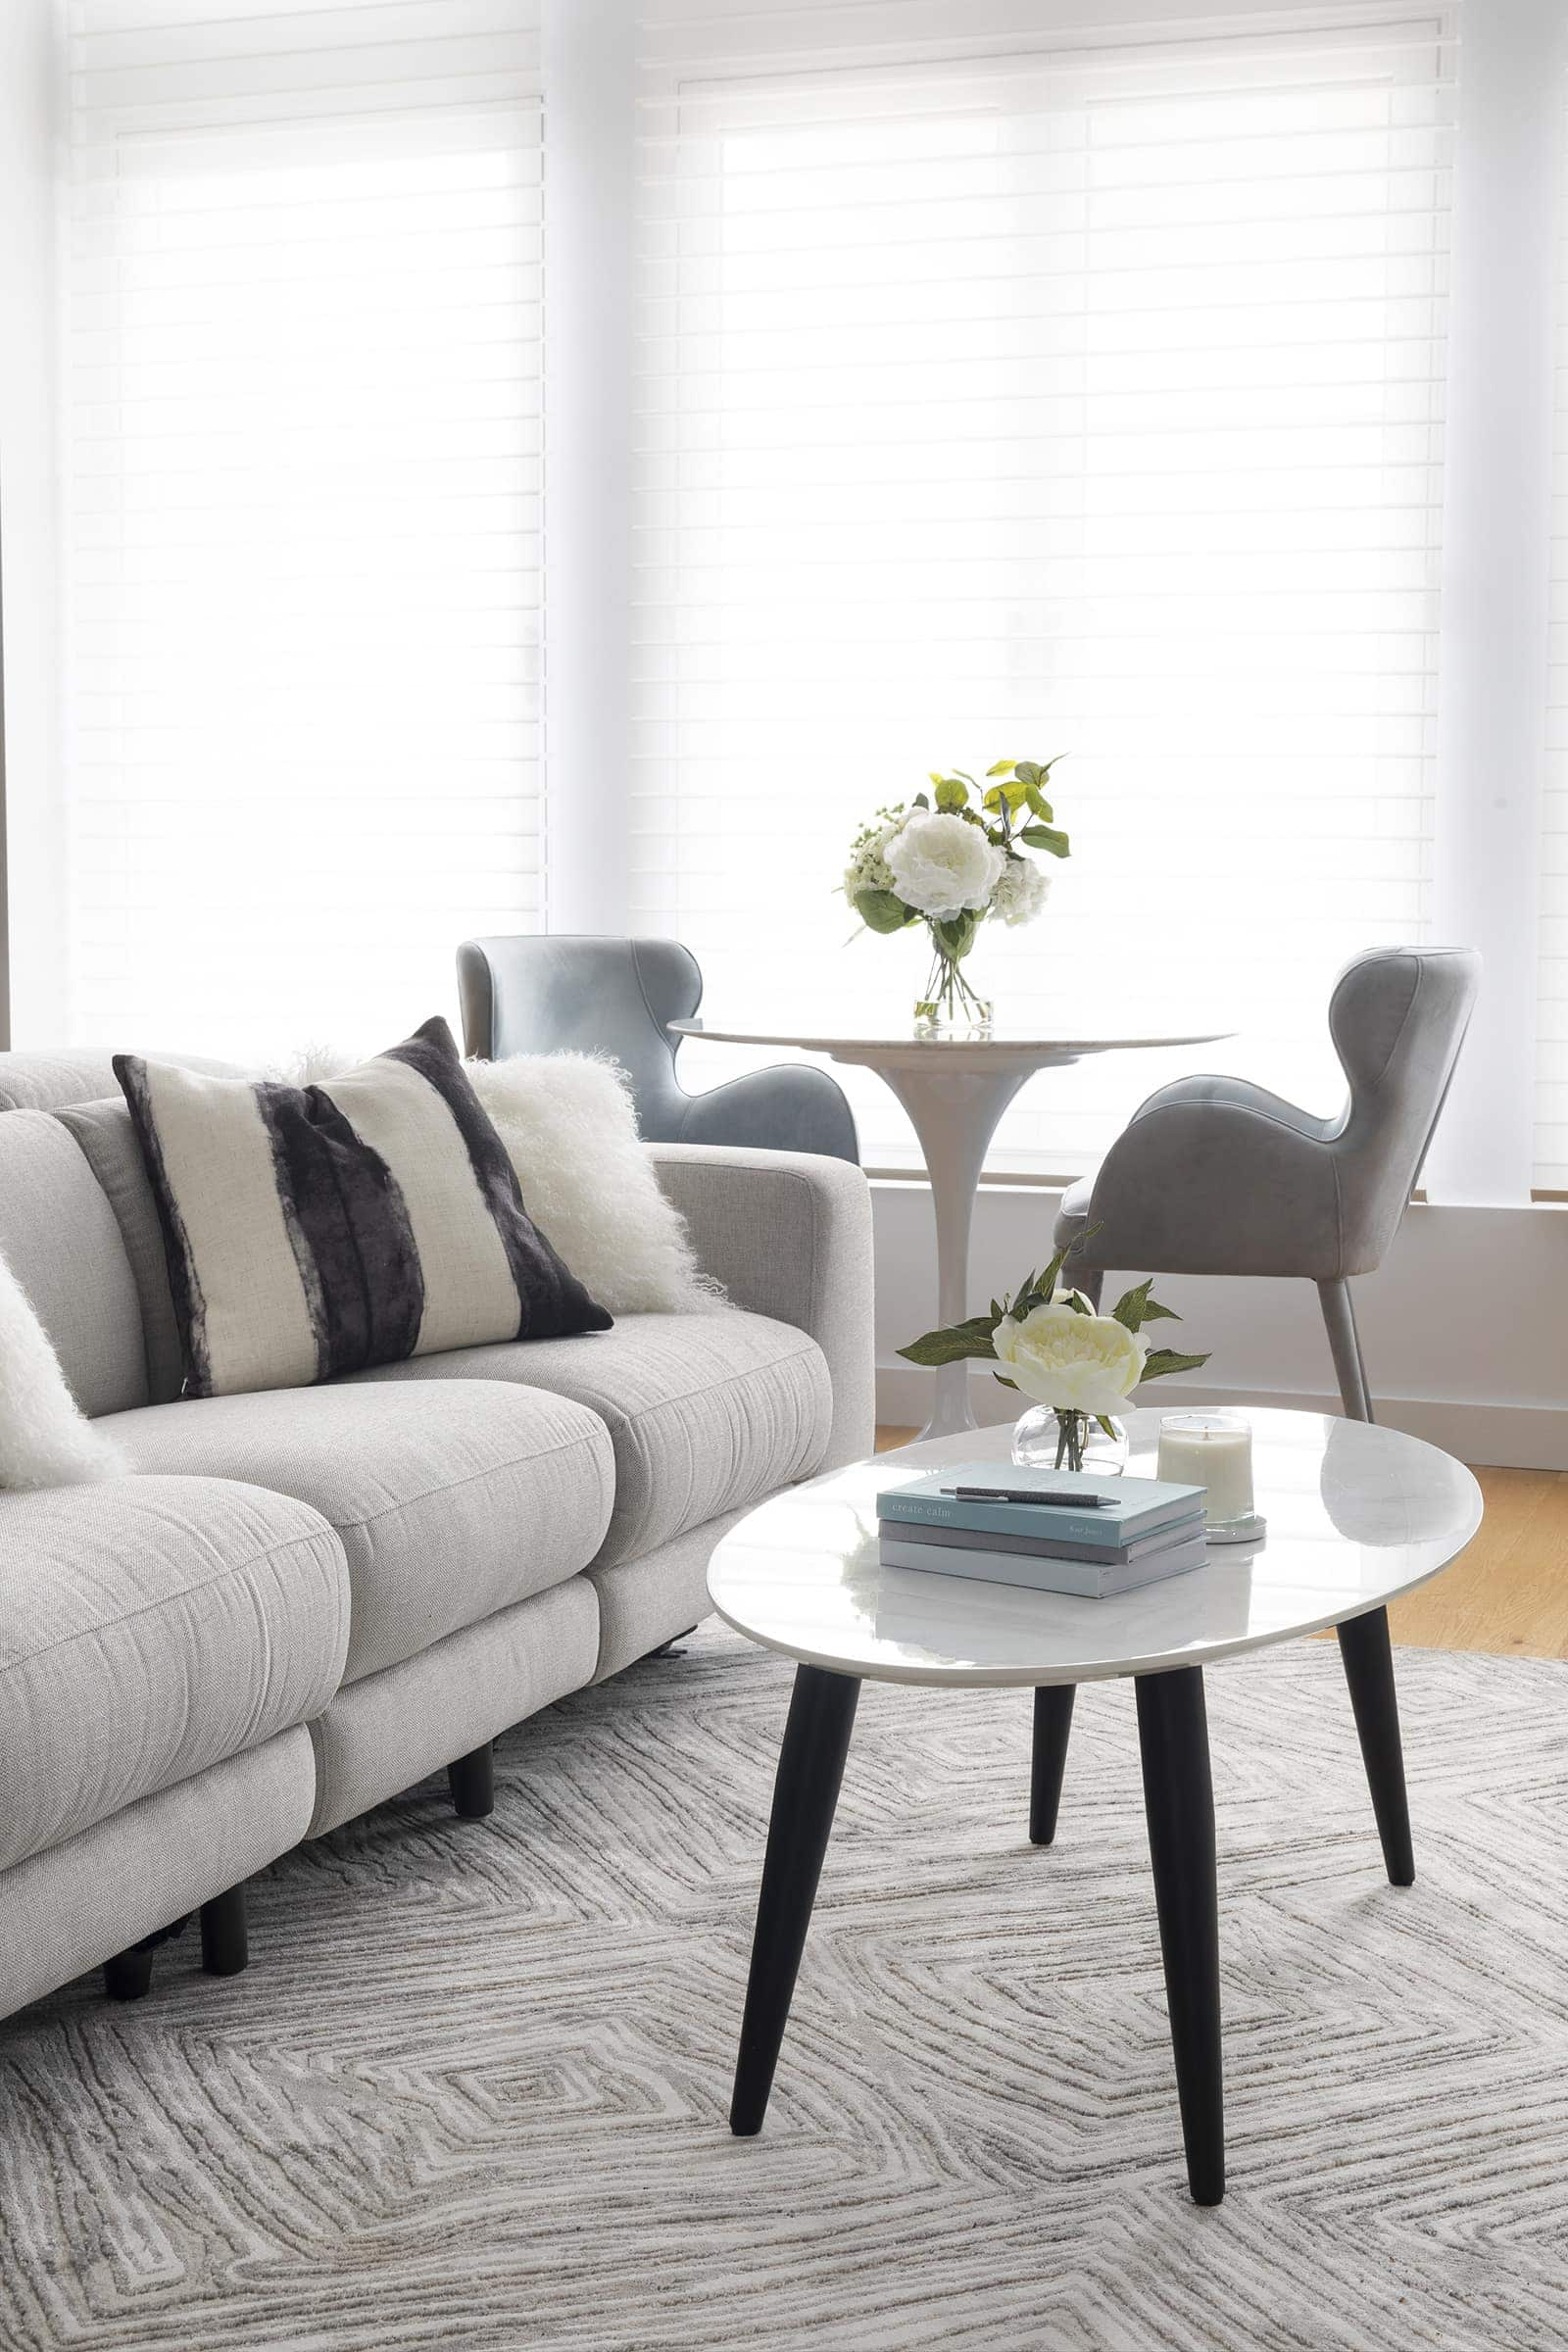 plush grey recliner sofa marble coffee table from fantastic furniture and diamond rug from the rug collection